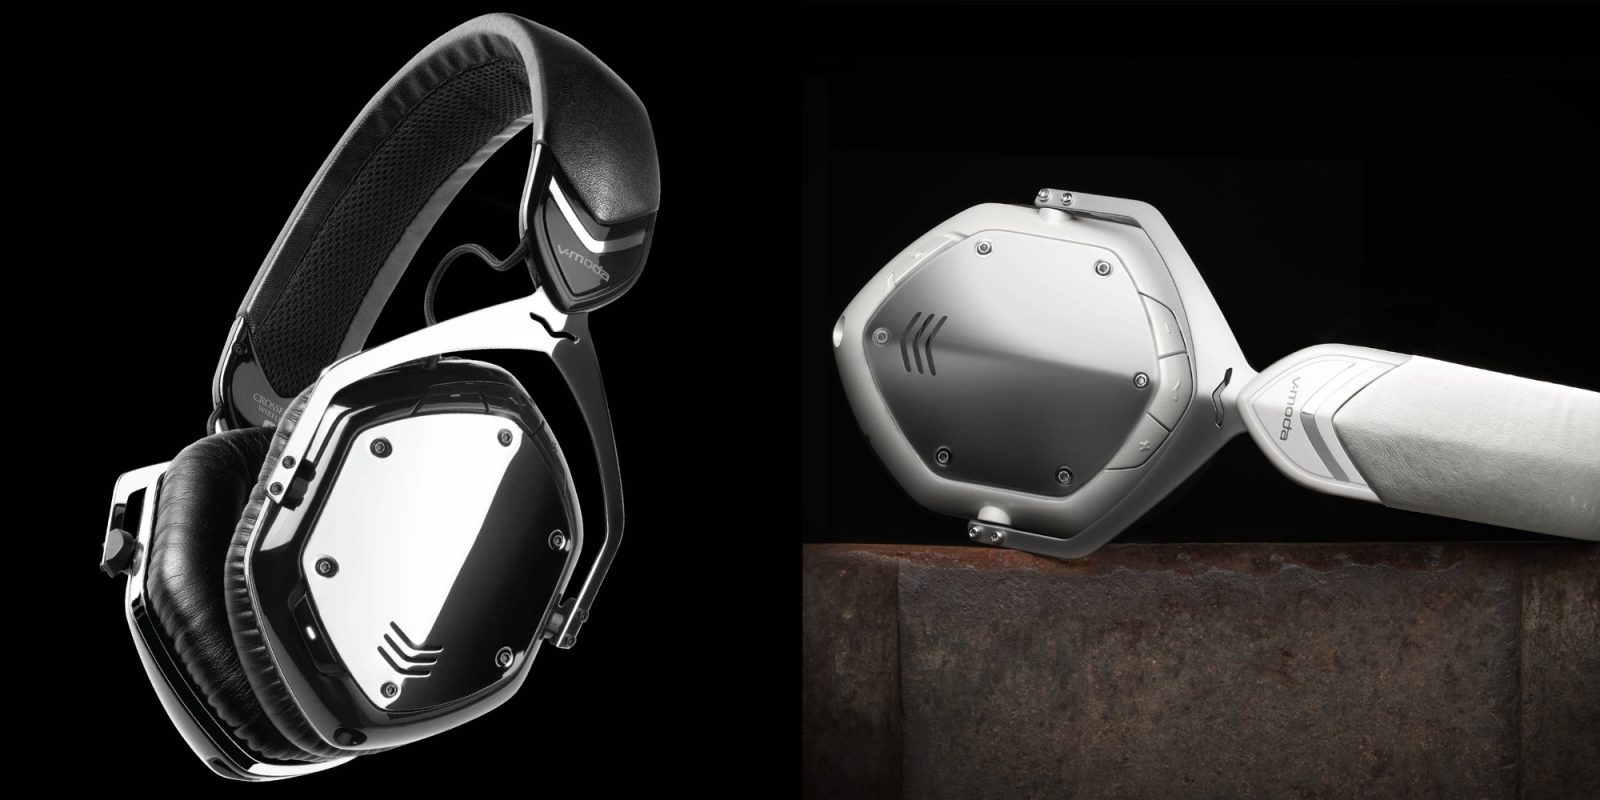 V-MODA's stylish Crossfade Wireless Headphones return to Amazon low at $100 (35% off)